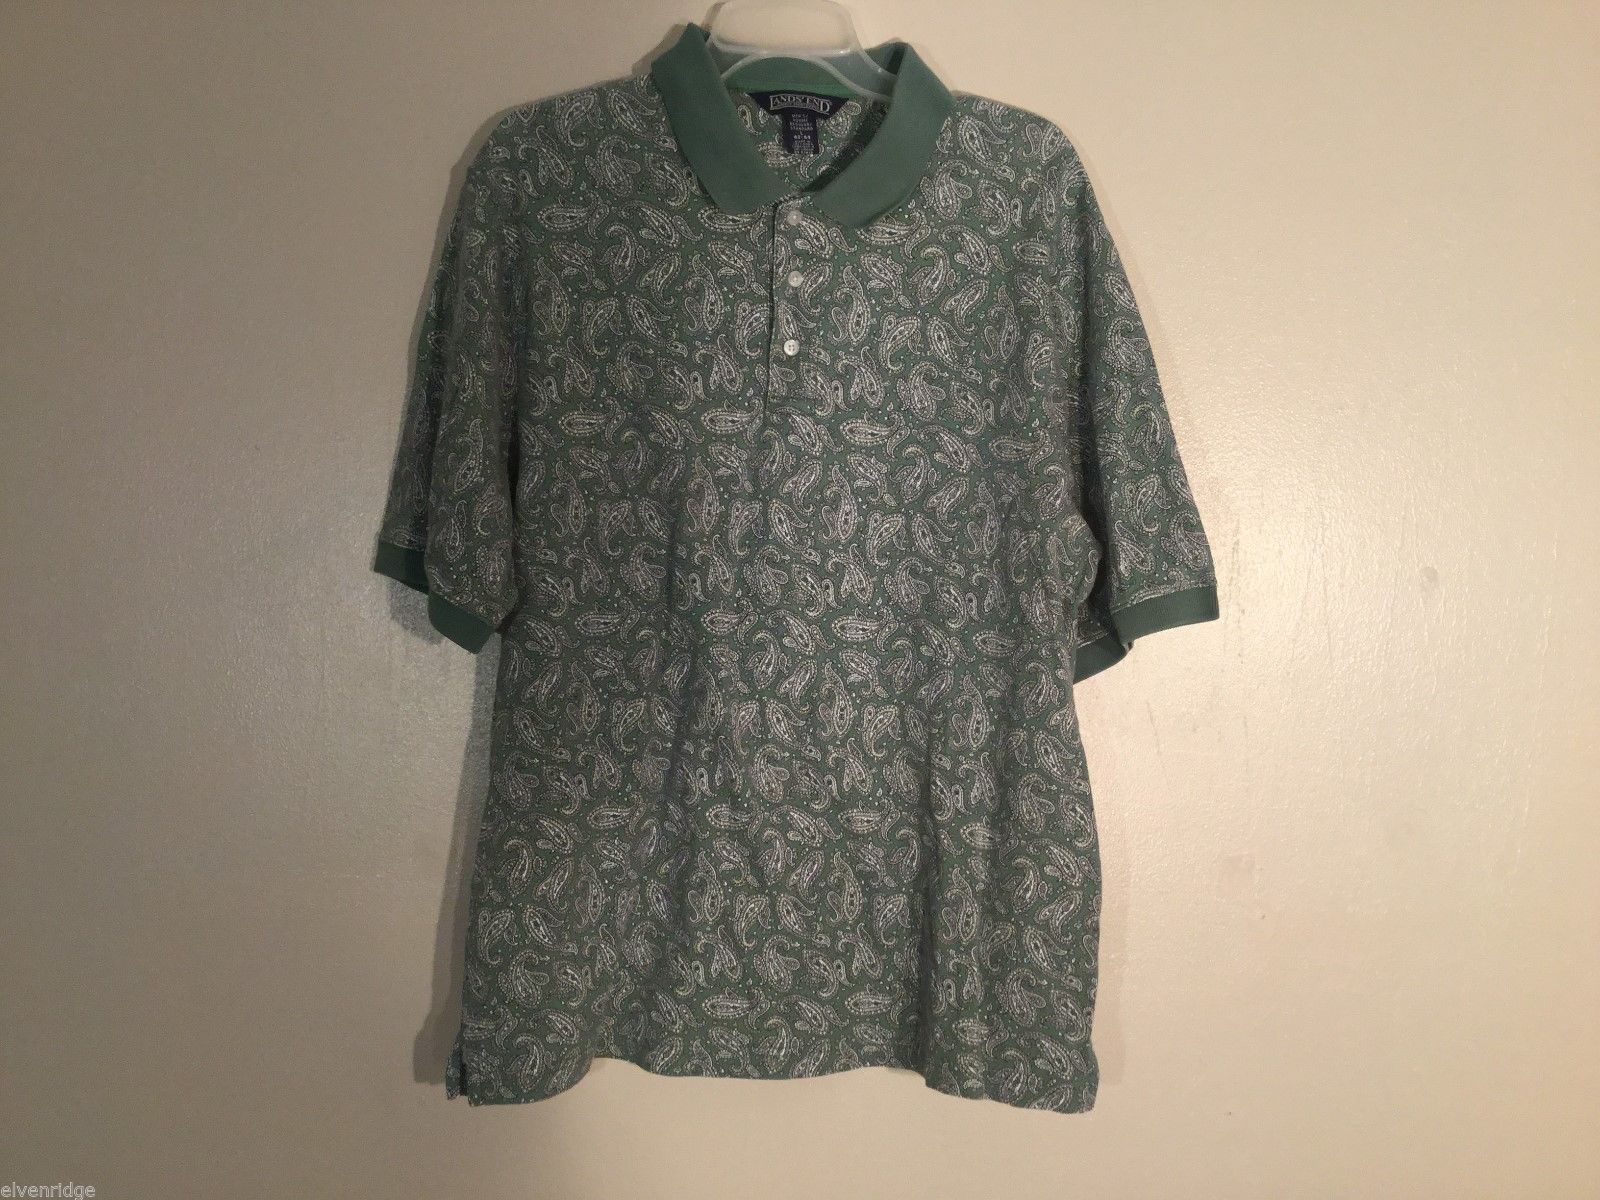 Mens Lands' End Green Paisley Polo Shirt,Size Large (42-44)